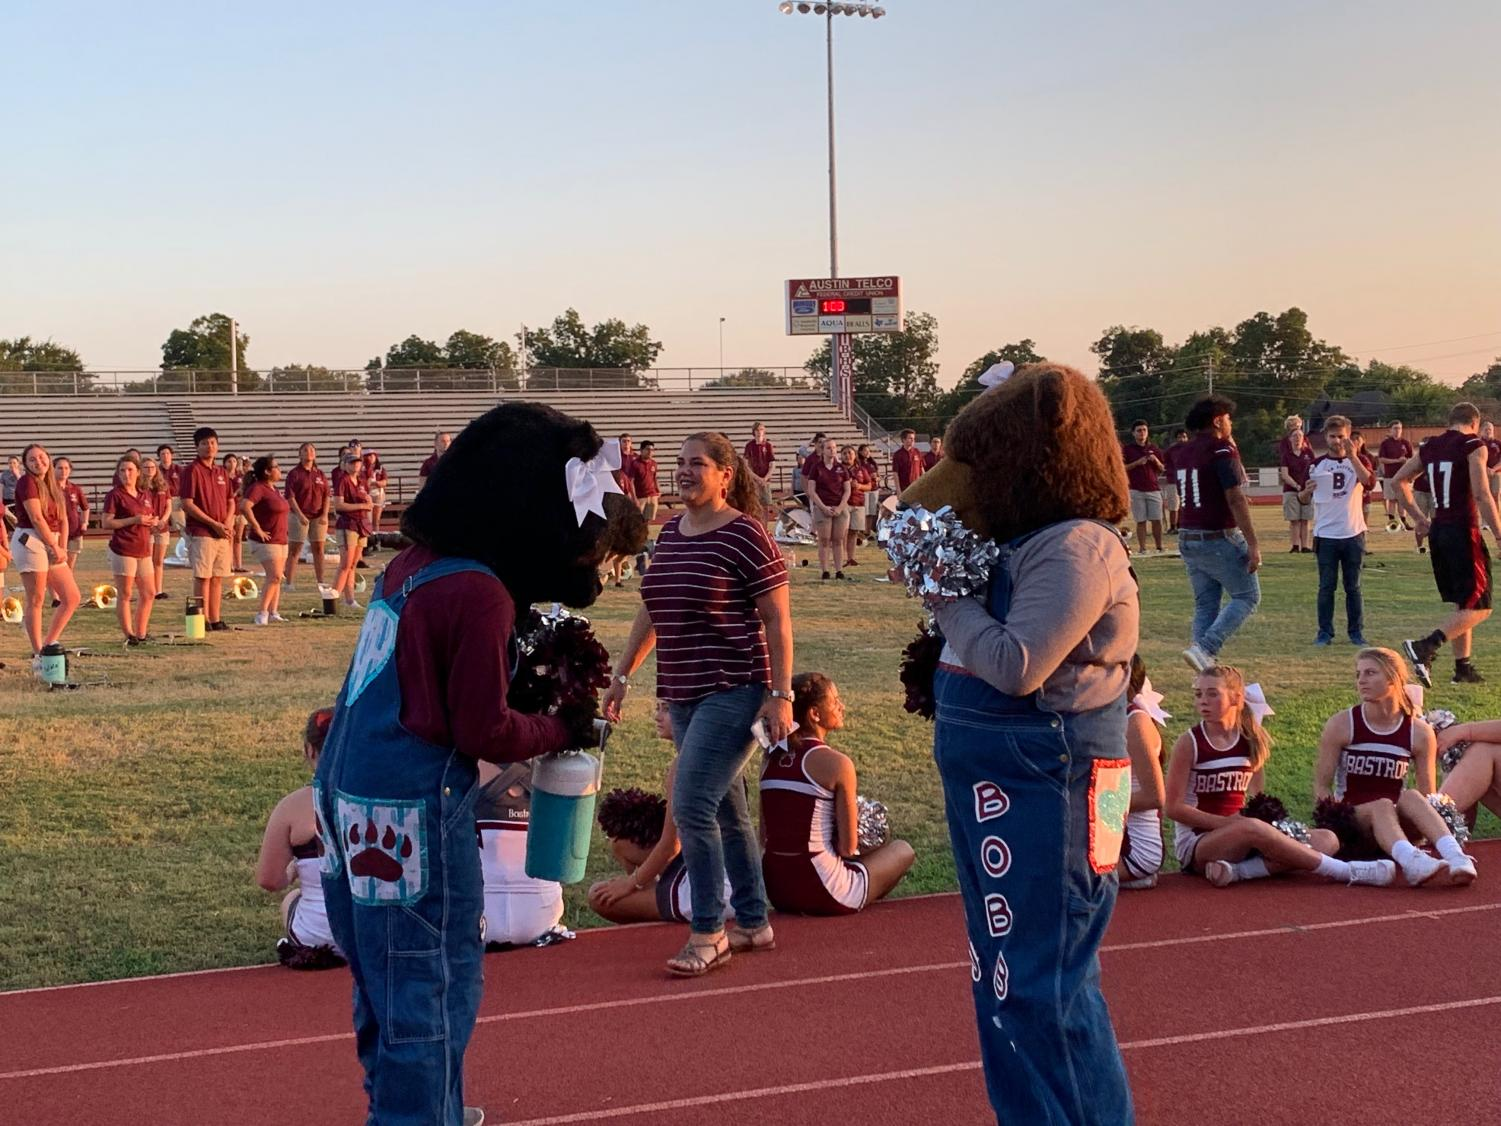 JV Mascot, Billie the Bear, mimics the poses of Varsity and Senior Mascot, Bobby the Bear, at Meet the Bears town pep rally on August 16 at Erhard Field.